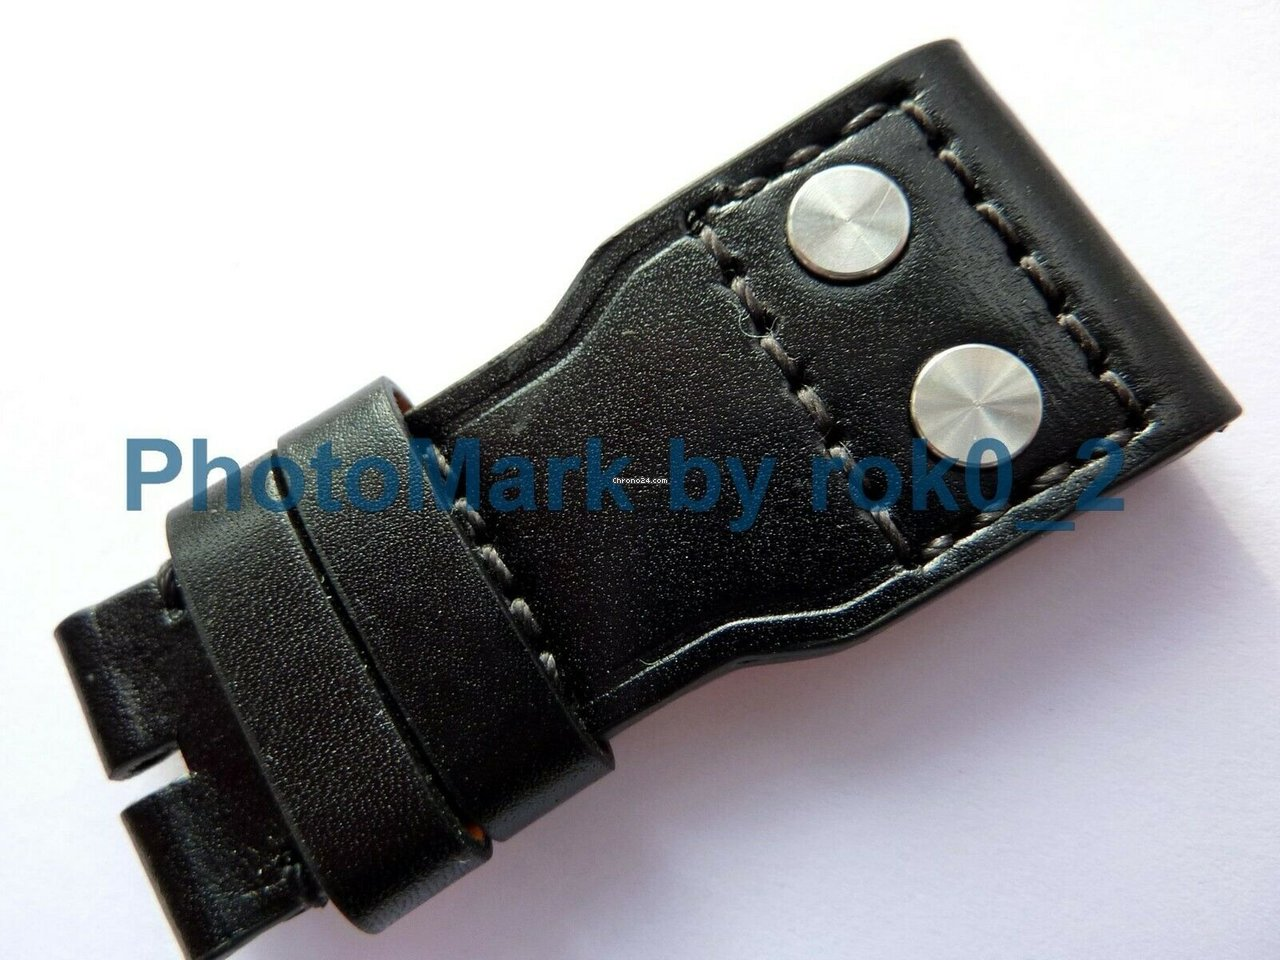 3dc172462 IWC Santoni Big Pilot Black Leather 22mm X 18mm Strap Band ... for $465 for  sale from a Trusted Seller on Chrono24